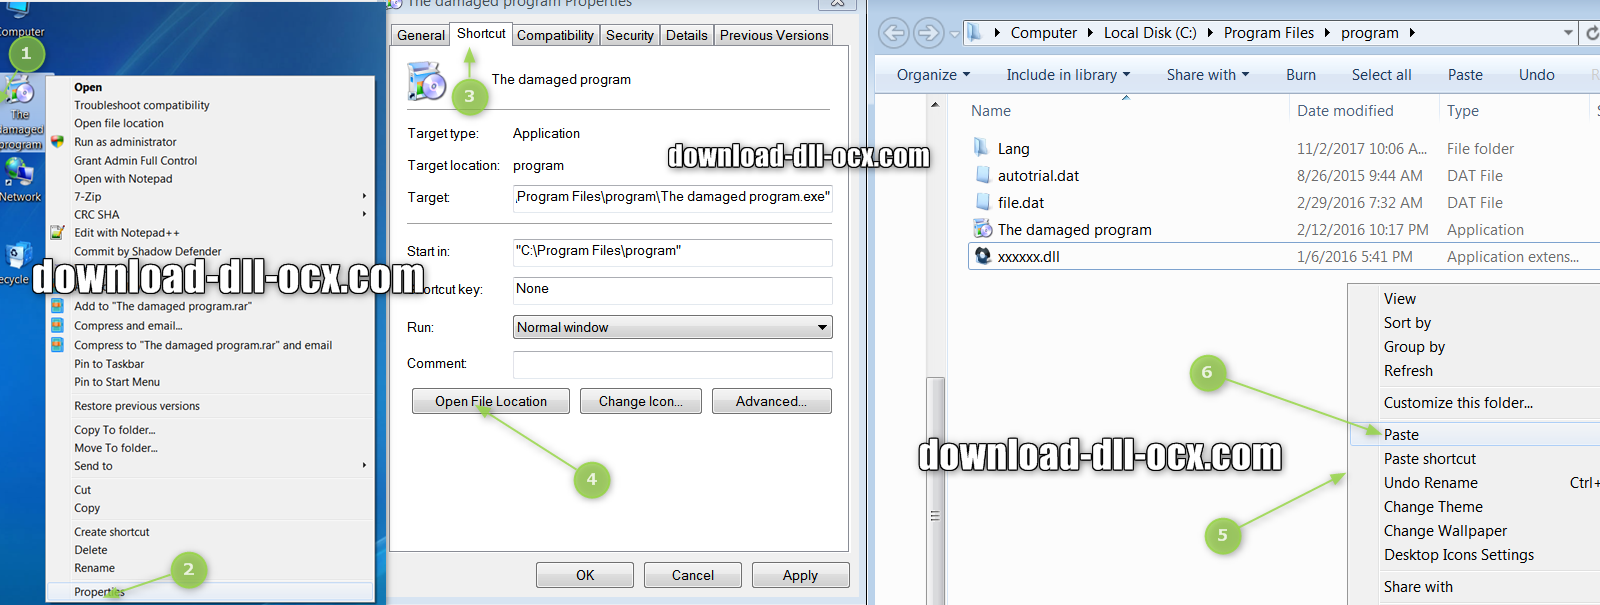 how to install AlphaImageCreator.dll file? for fix missing